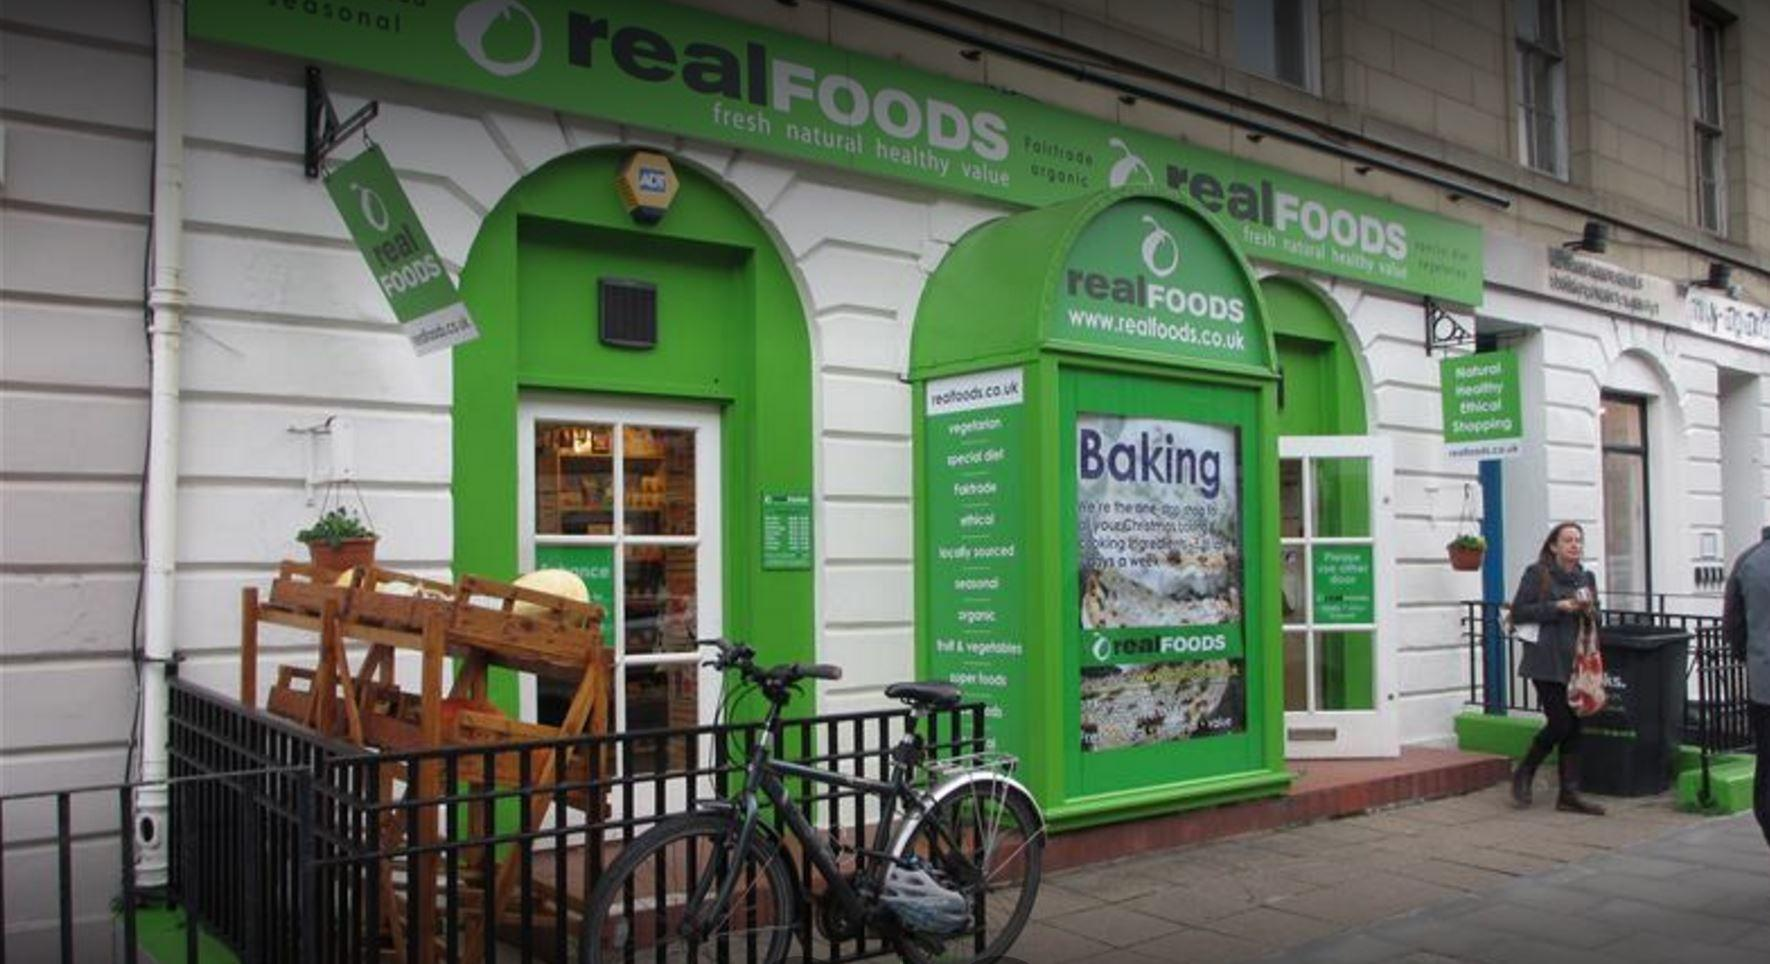 shop front view of Real Foods